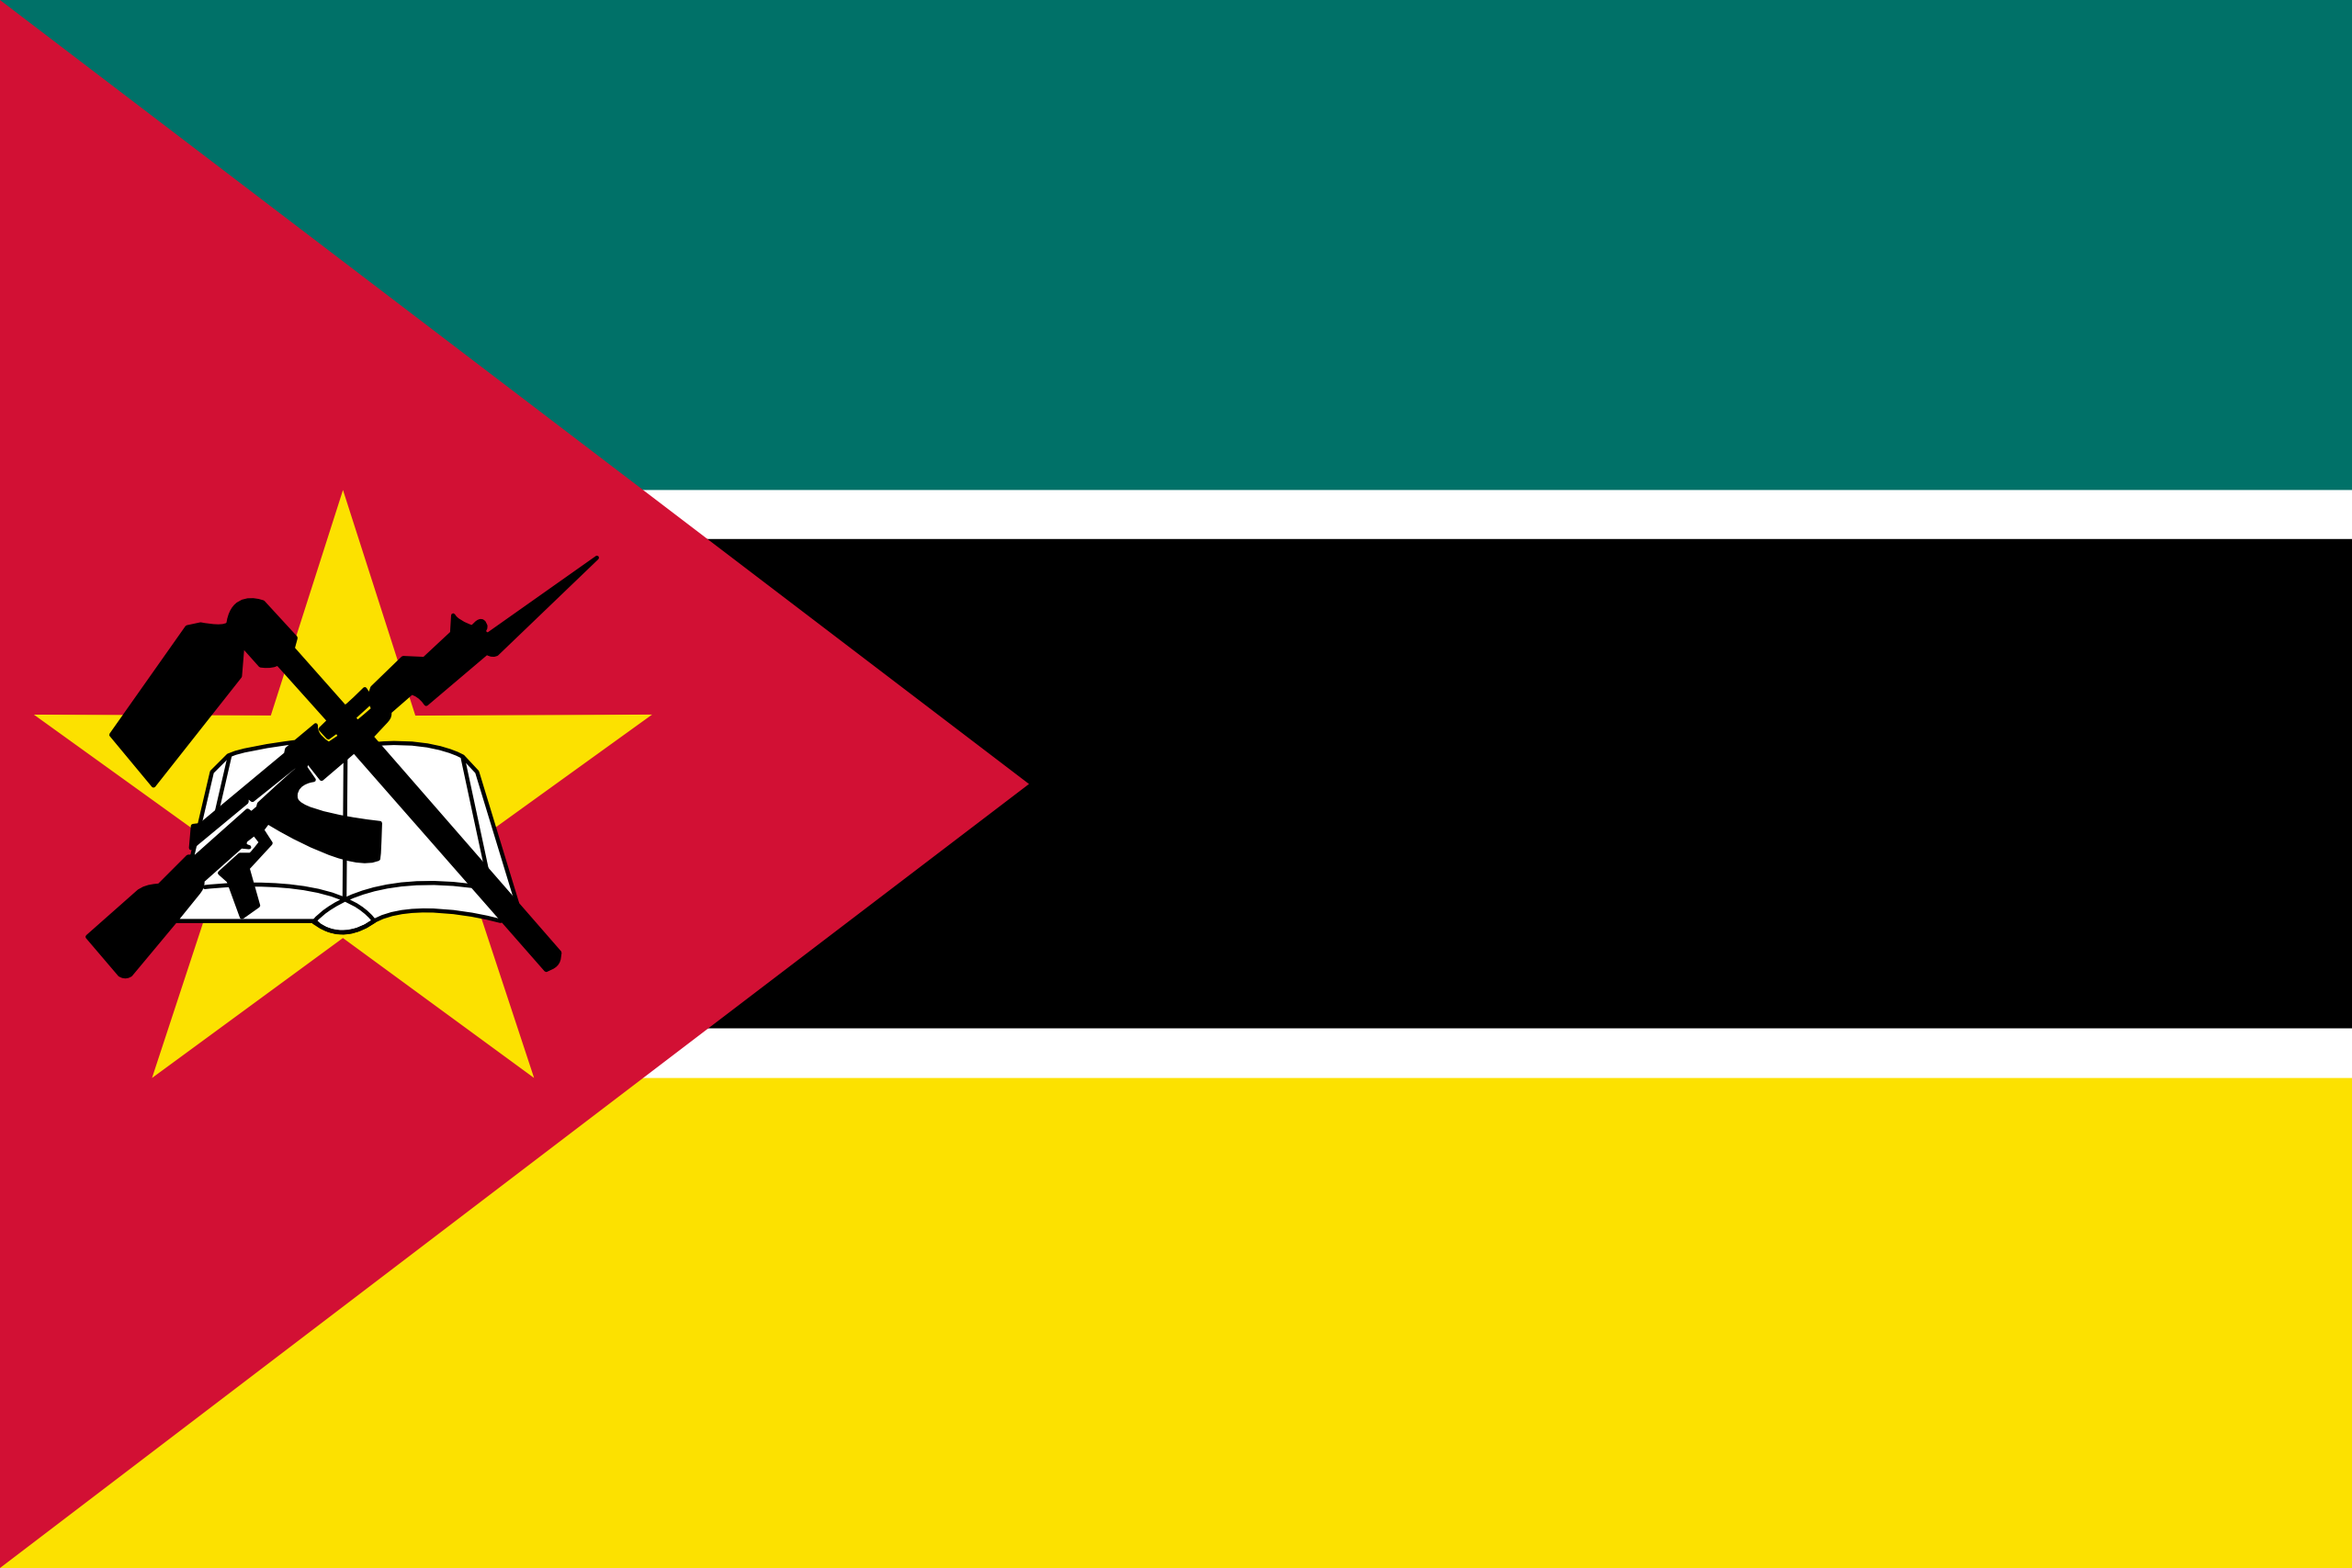 https://aerospaceexport.com/wp-content/uploads/2019/10/mozambique.png